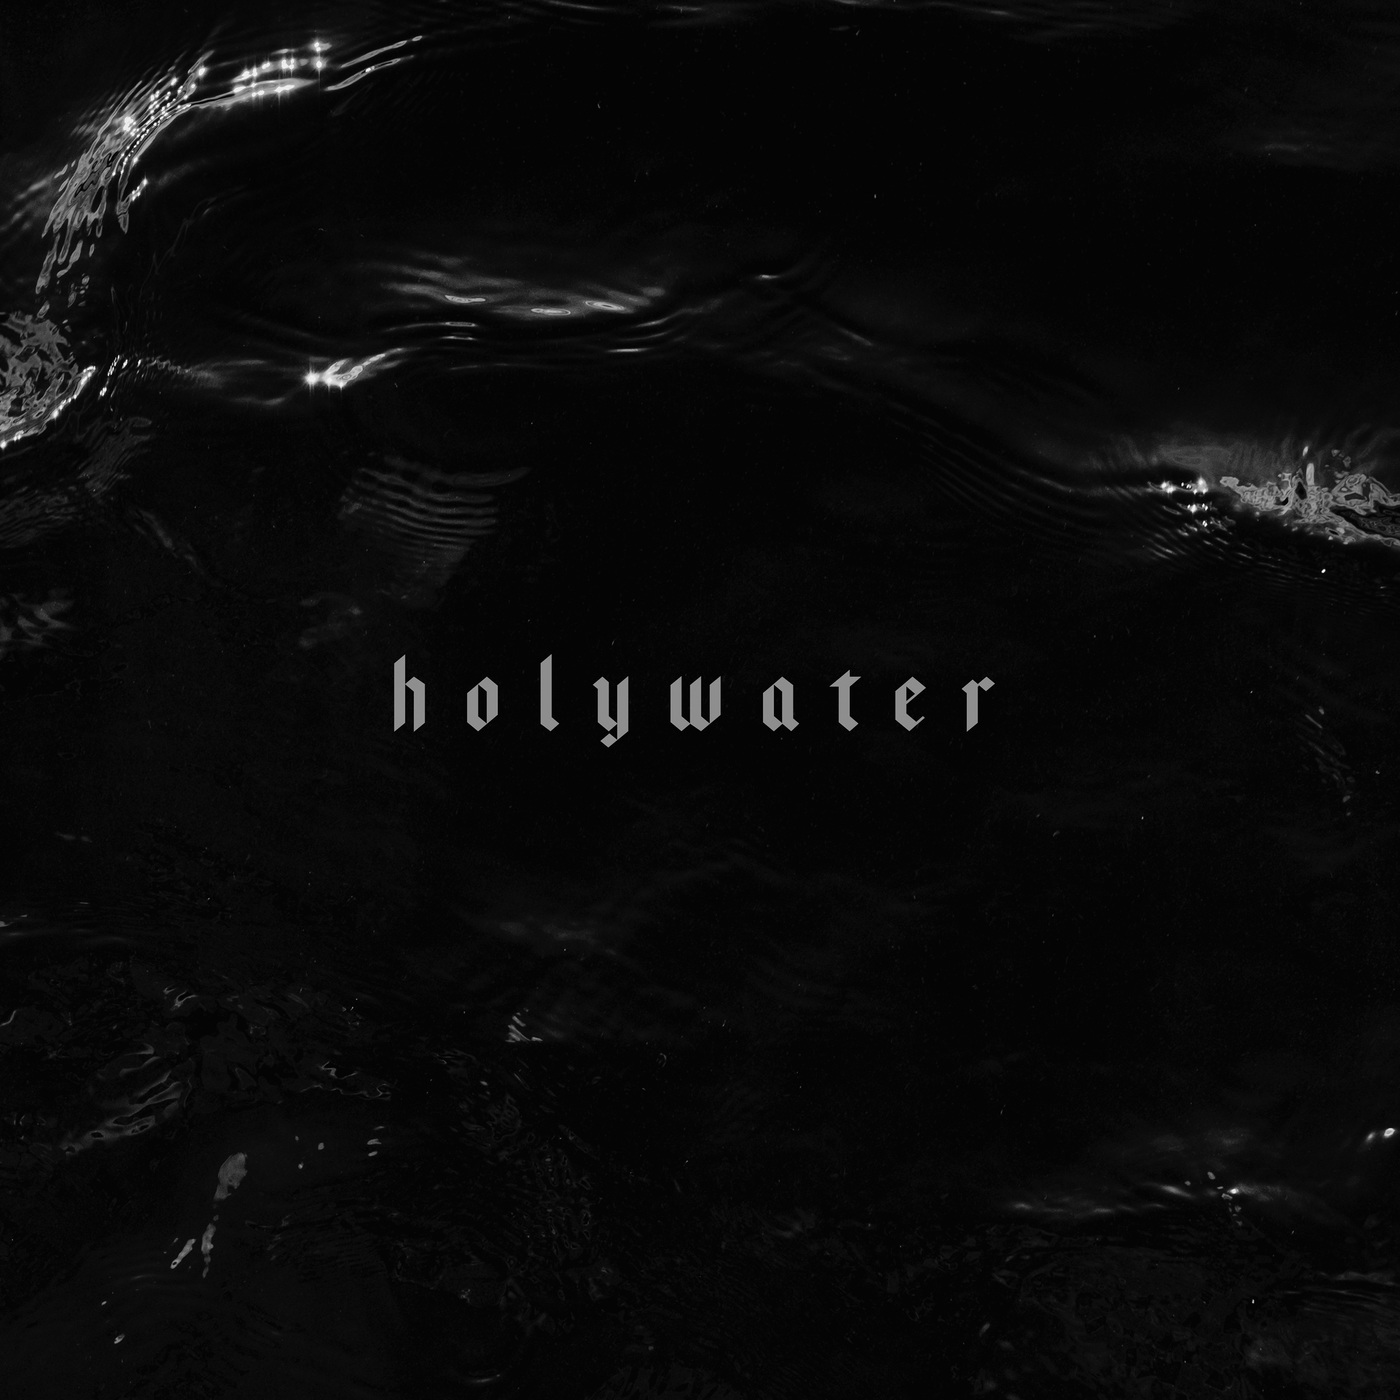 Volumes - holywater (Single) (2020)